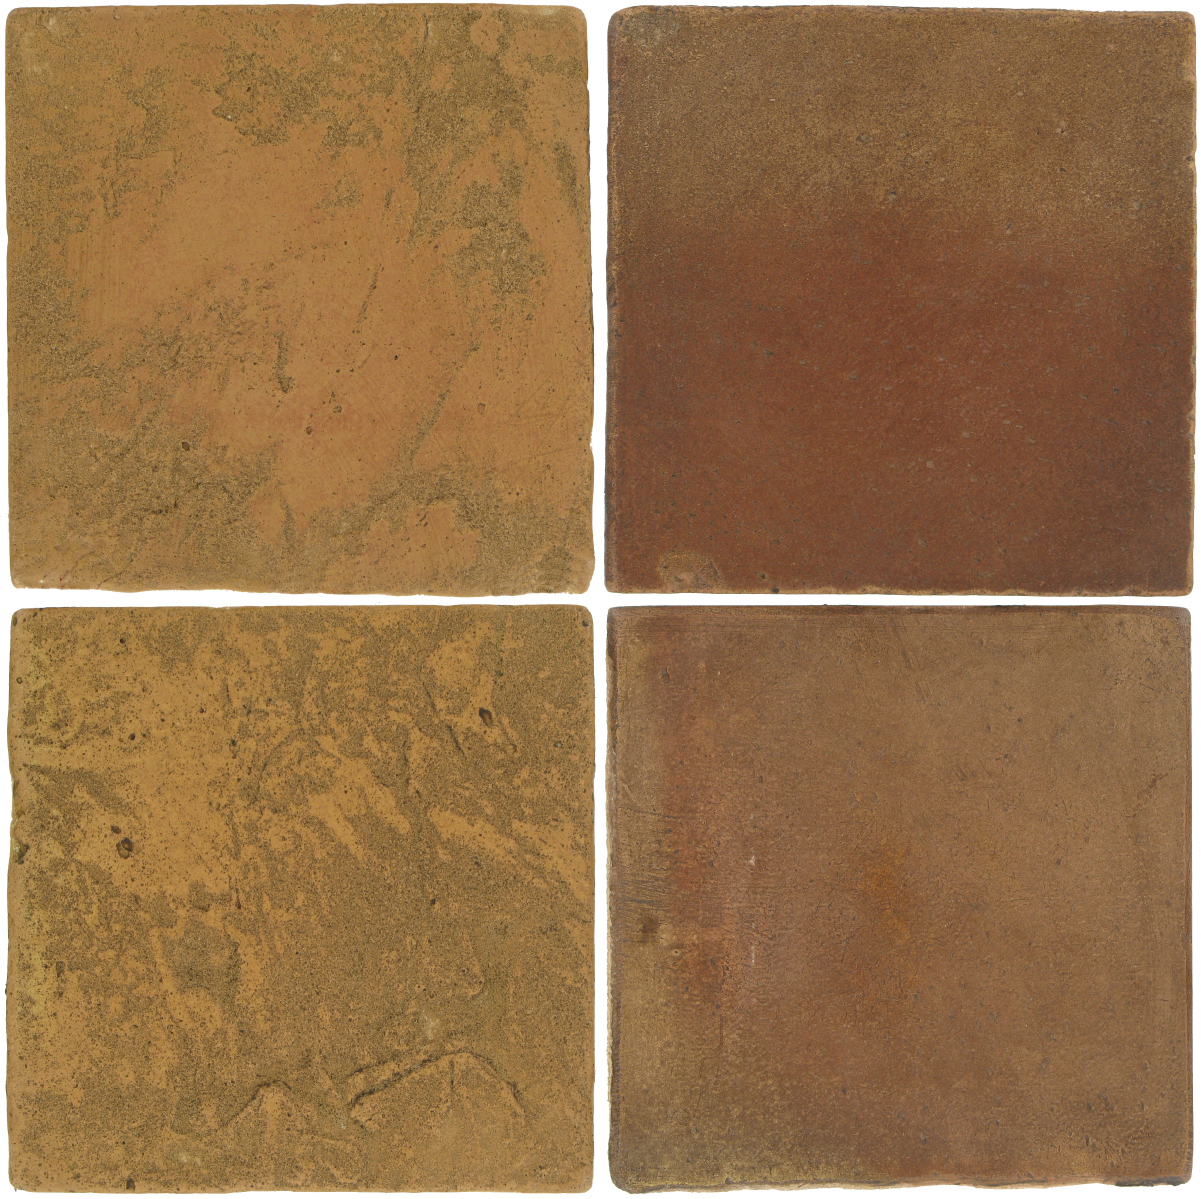 Pedralbes Antique Terracotta  2 Color Combinations  VTG-PSSW Siena Wheat + OHS-PSCM Camel Brown